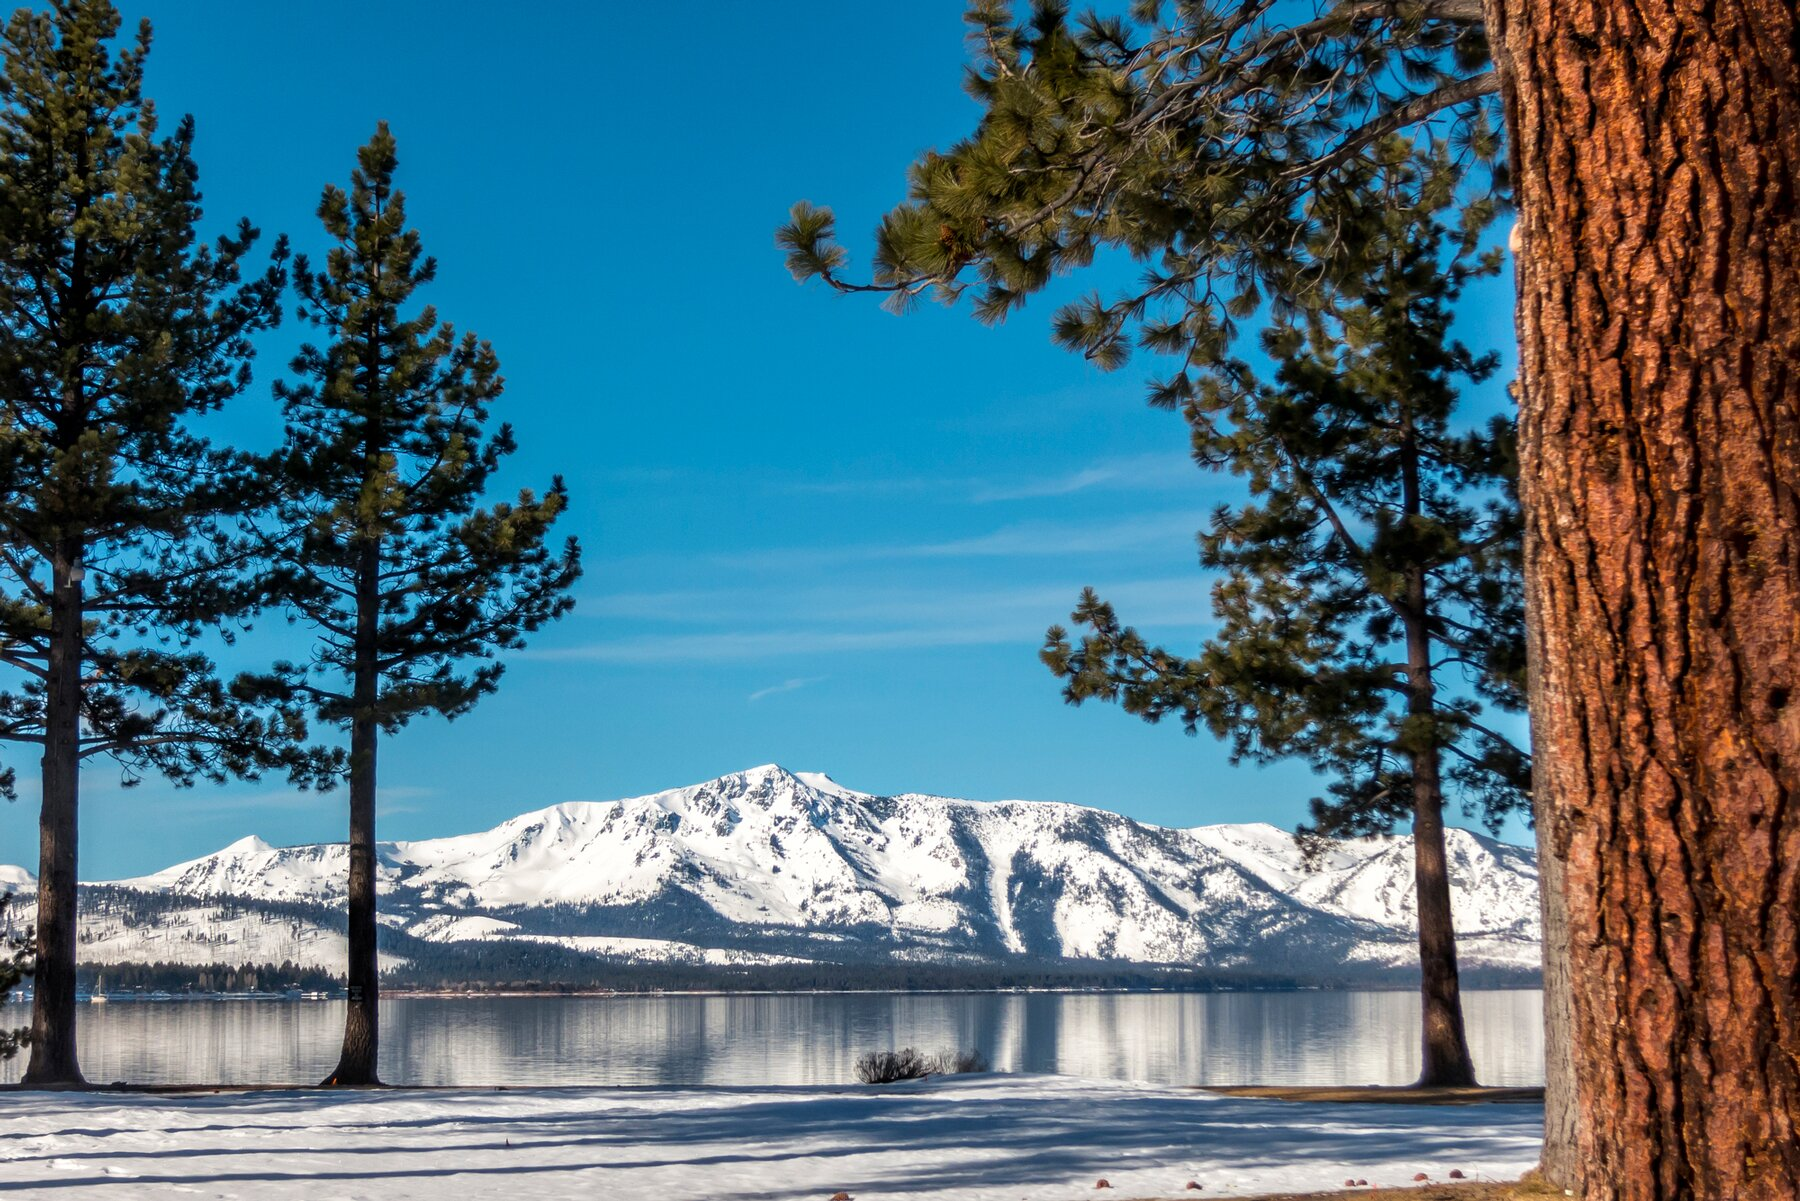 This image was taken at Stateline, NV looking toward Mount Tallac in Lake Tahoe. Winter scene.